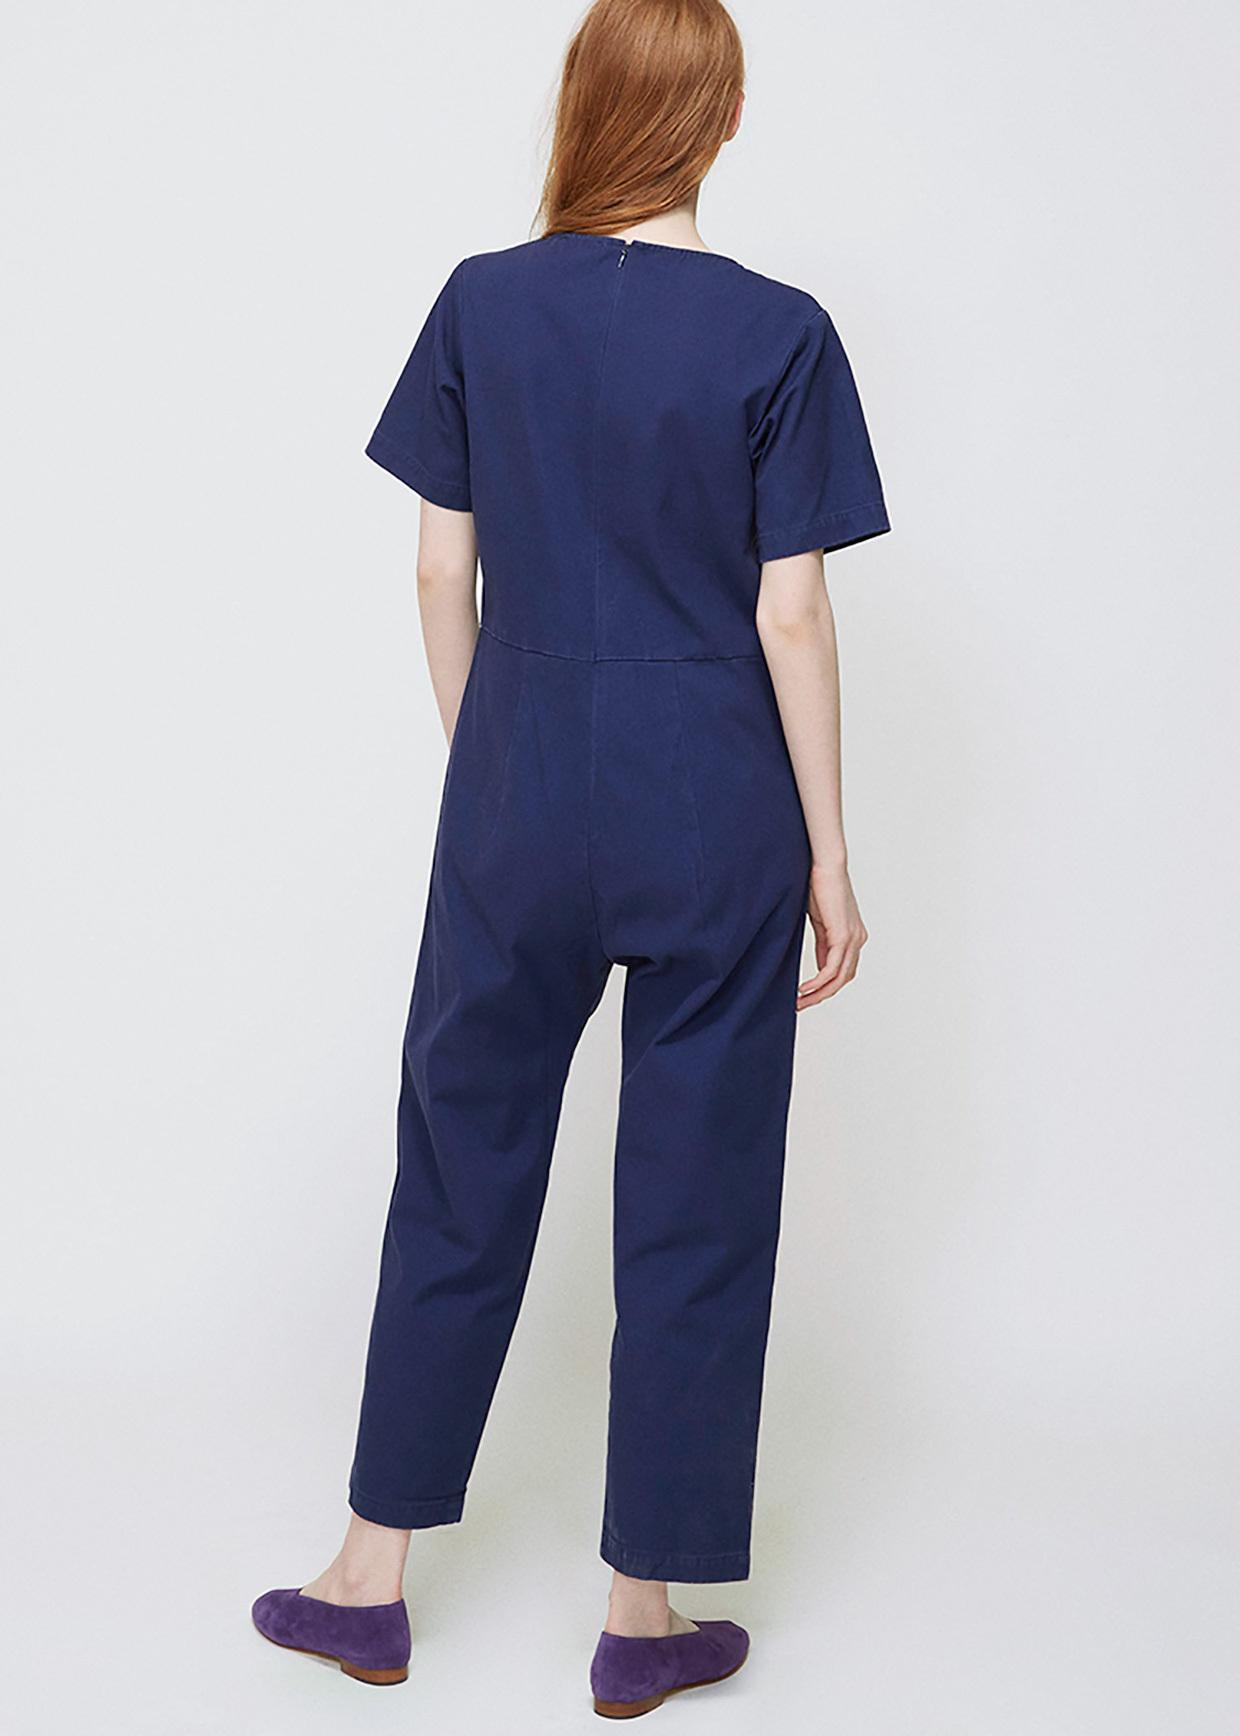 1862fba7cba4 Lyst - Ilana Kohn Marine Canvas Lee Jumpsuit in Blue